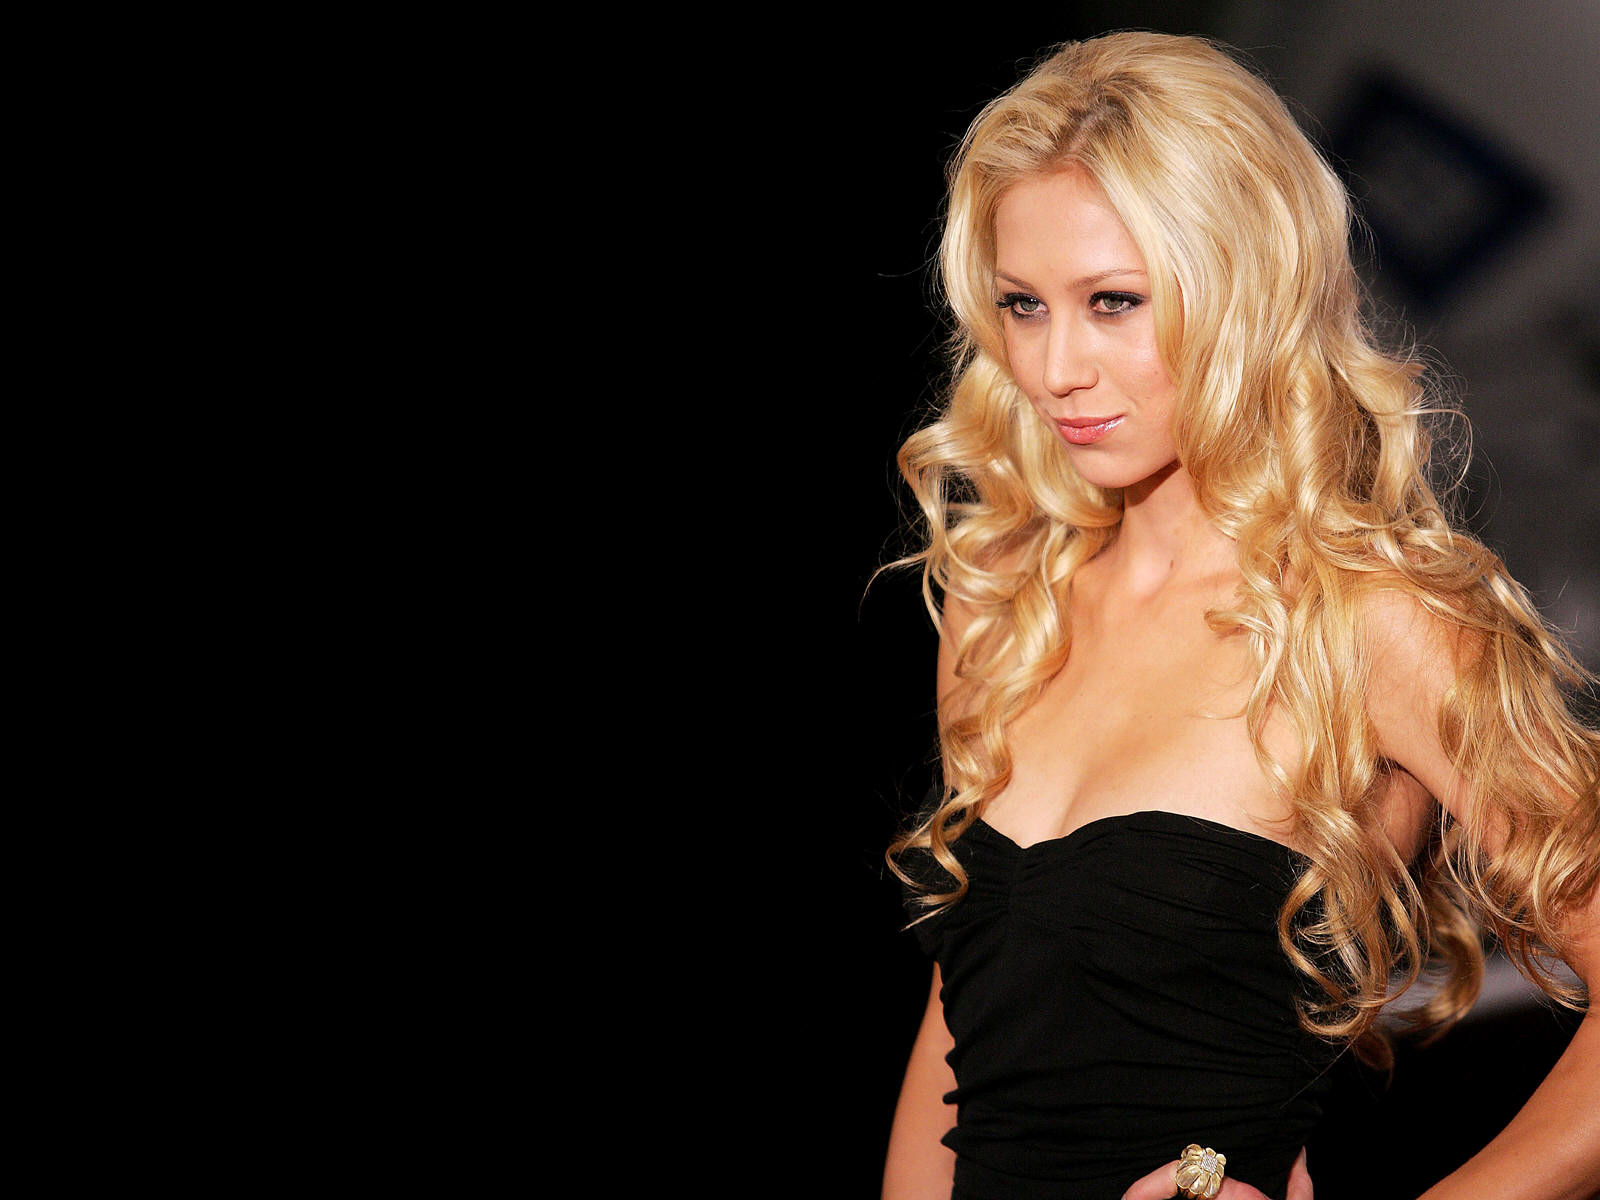 Cute Faith Wallpapers Anna Kournikova Hot Pictures Photo Gallery Amp Wallpapers